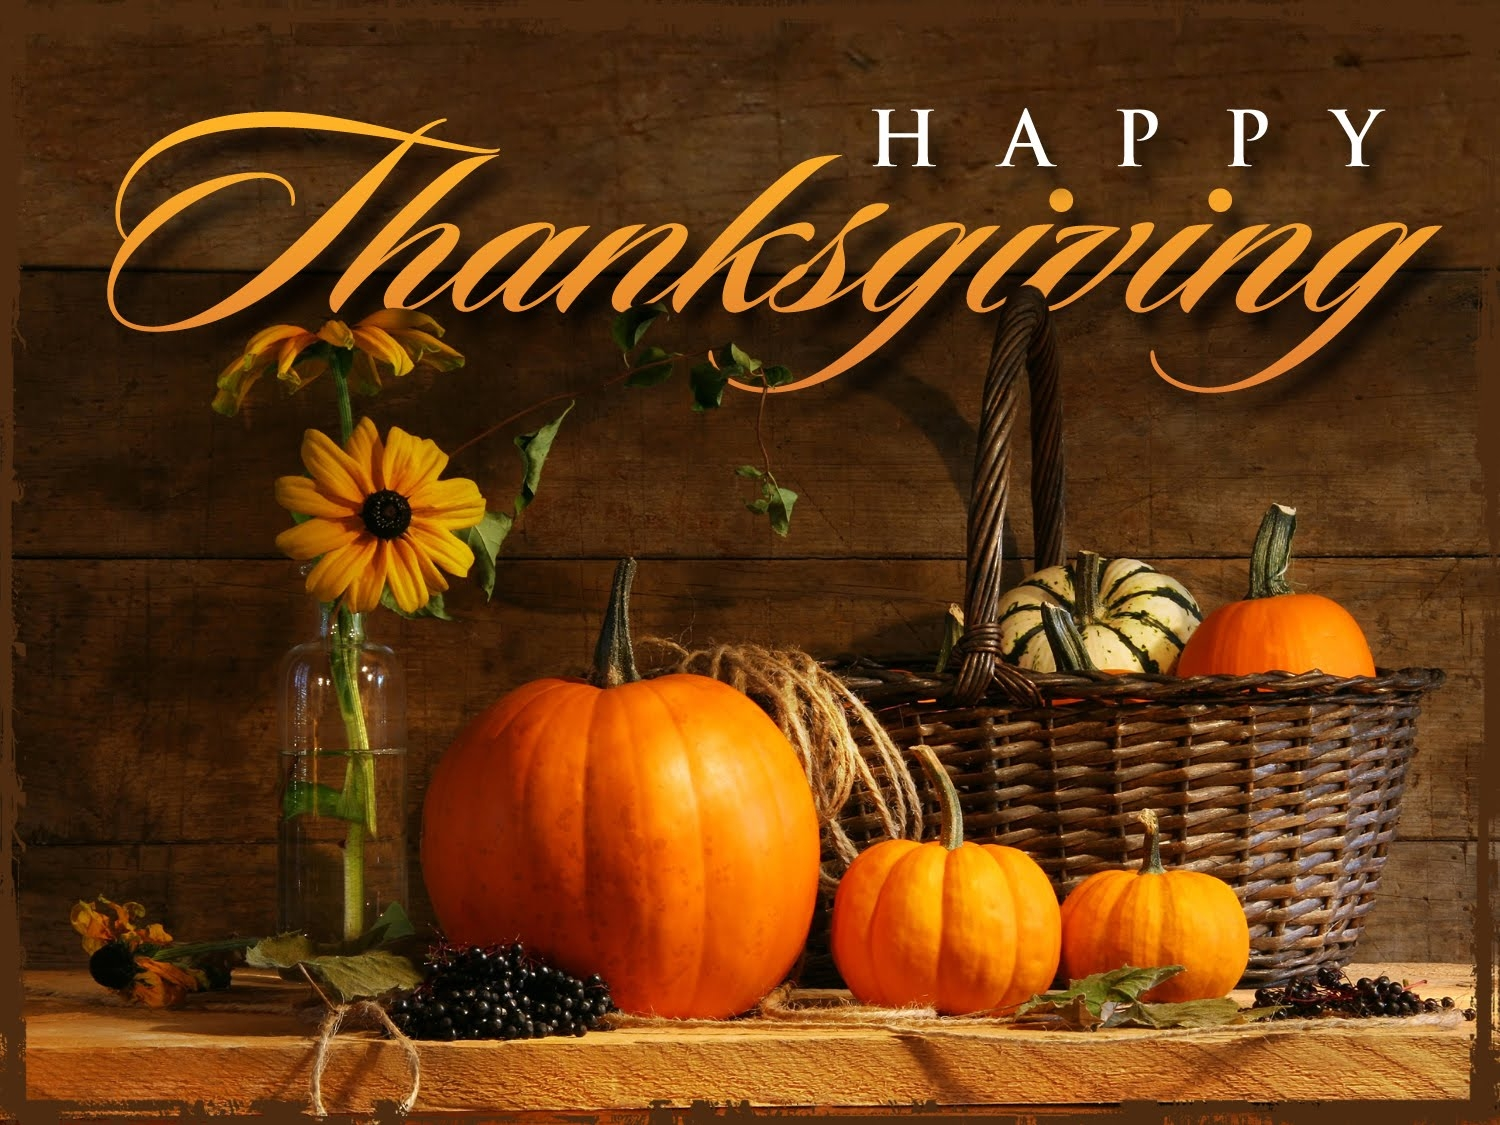 Customer Appreciation - CFO 4 Your Biz would like to thank all of the wonderful clients we have had during 2017. We hope you have an enjoyable Thanksgiving and our offices will be closed Thursday, November 23rd and Friday, November 24th in observance of Thanksgiving.